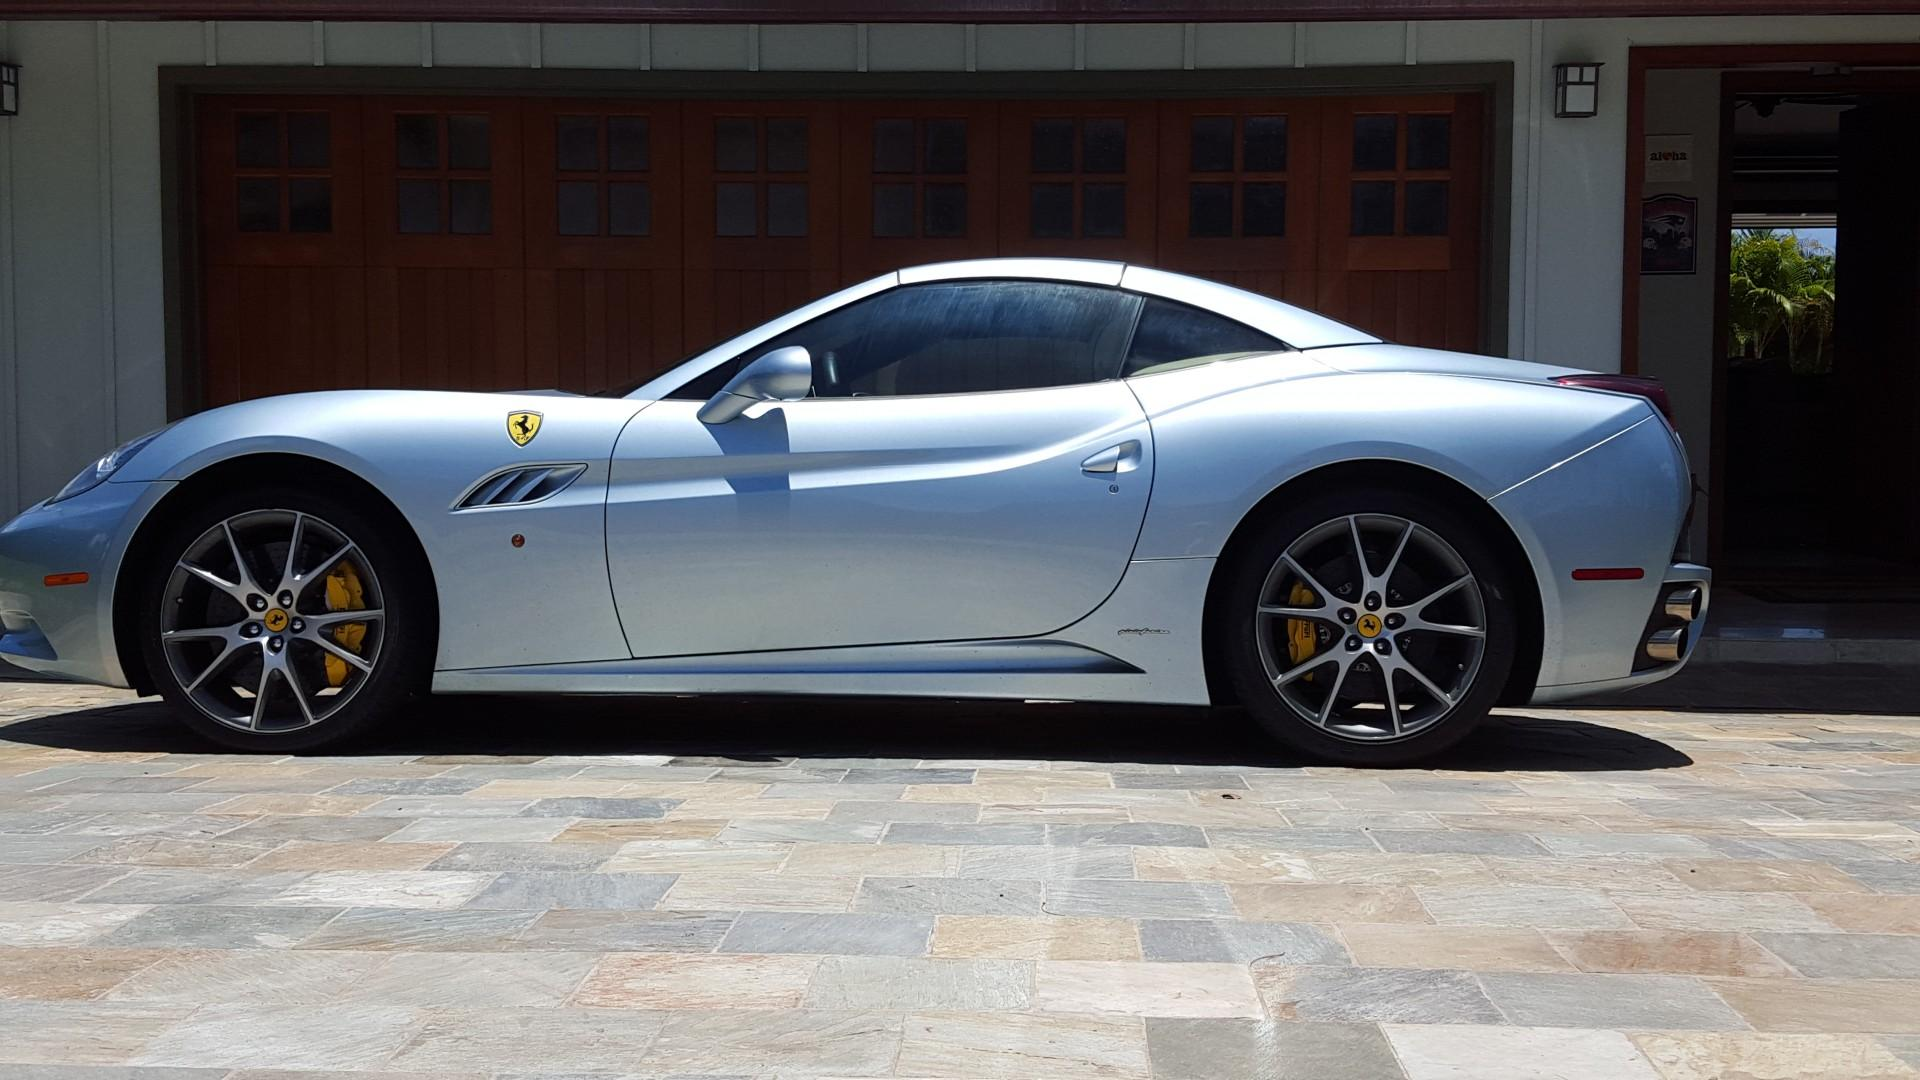 Optional Ferarri for rent while staying at the villa!